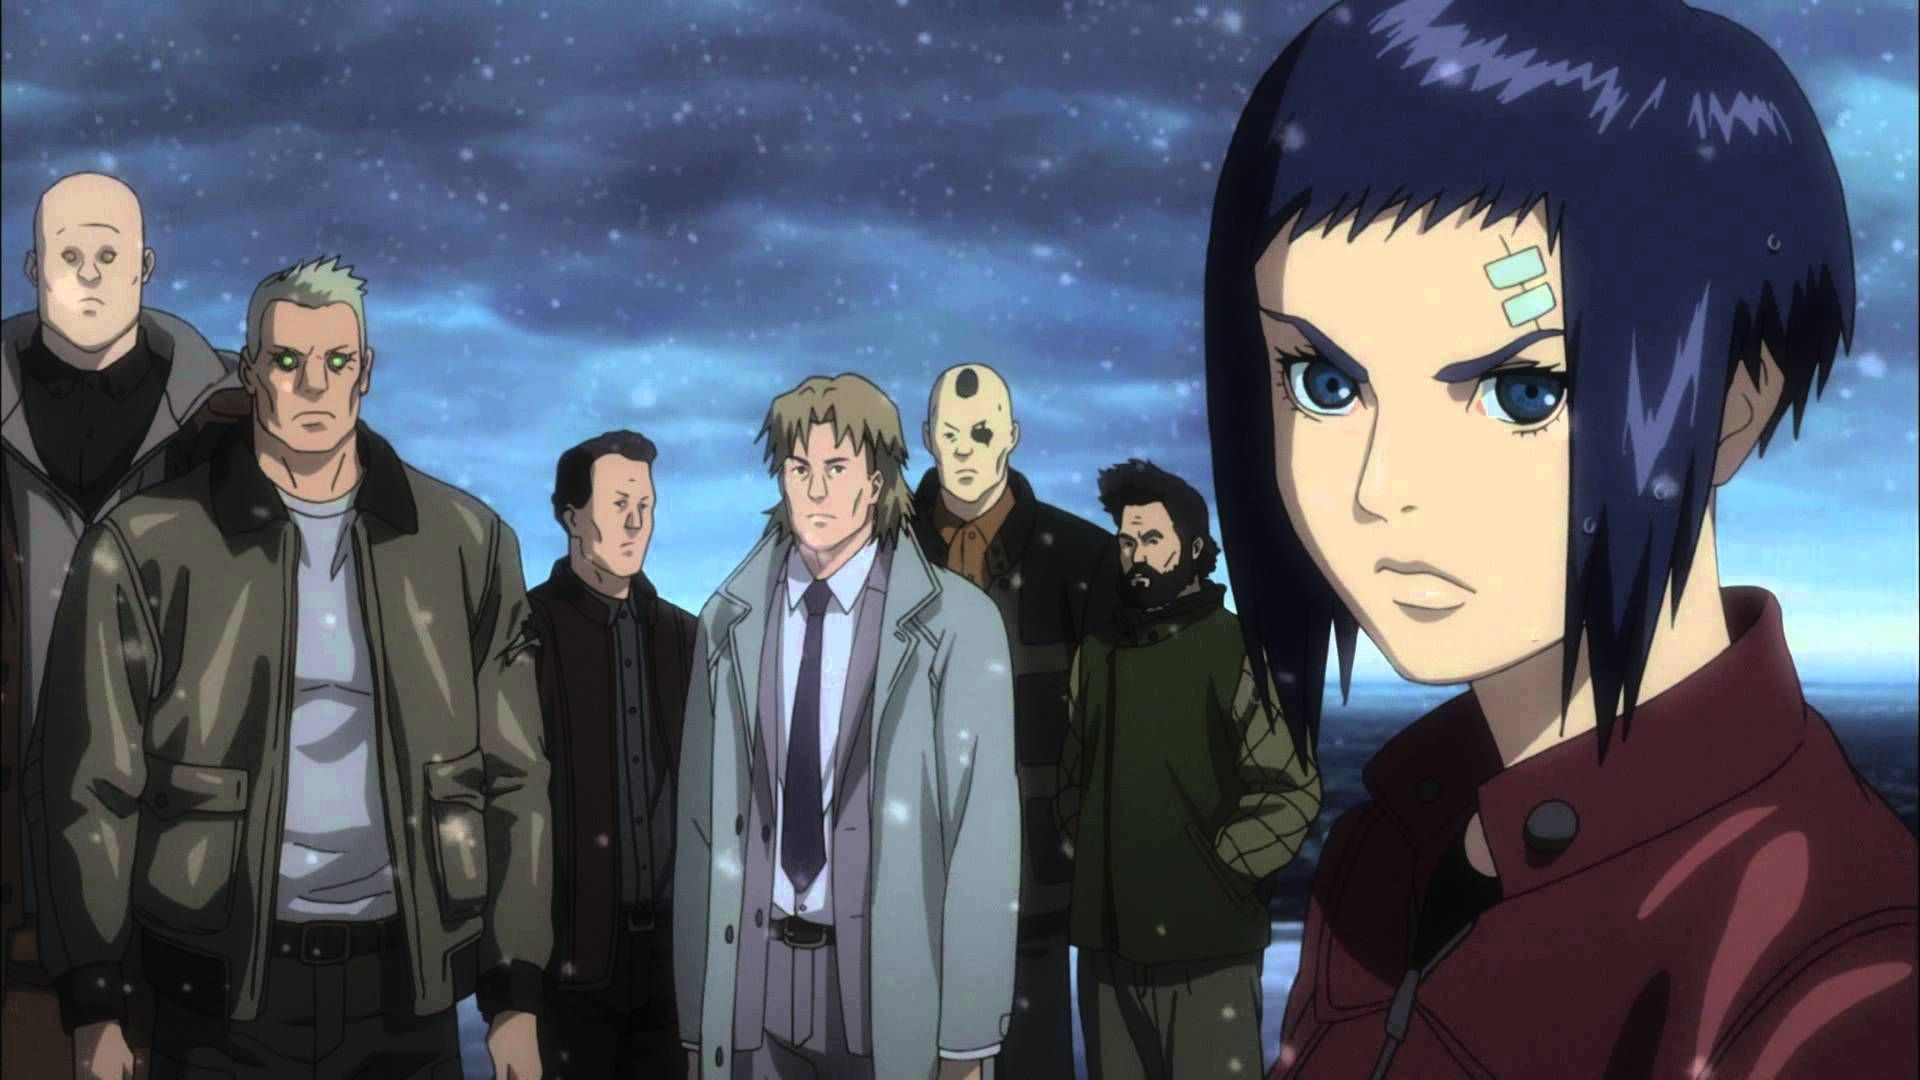 Related image Ghost in the shell, Ghost, Japanese animation